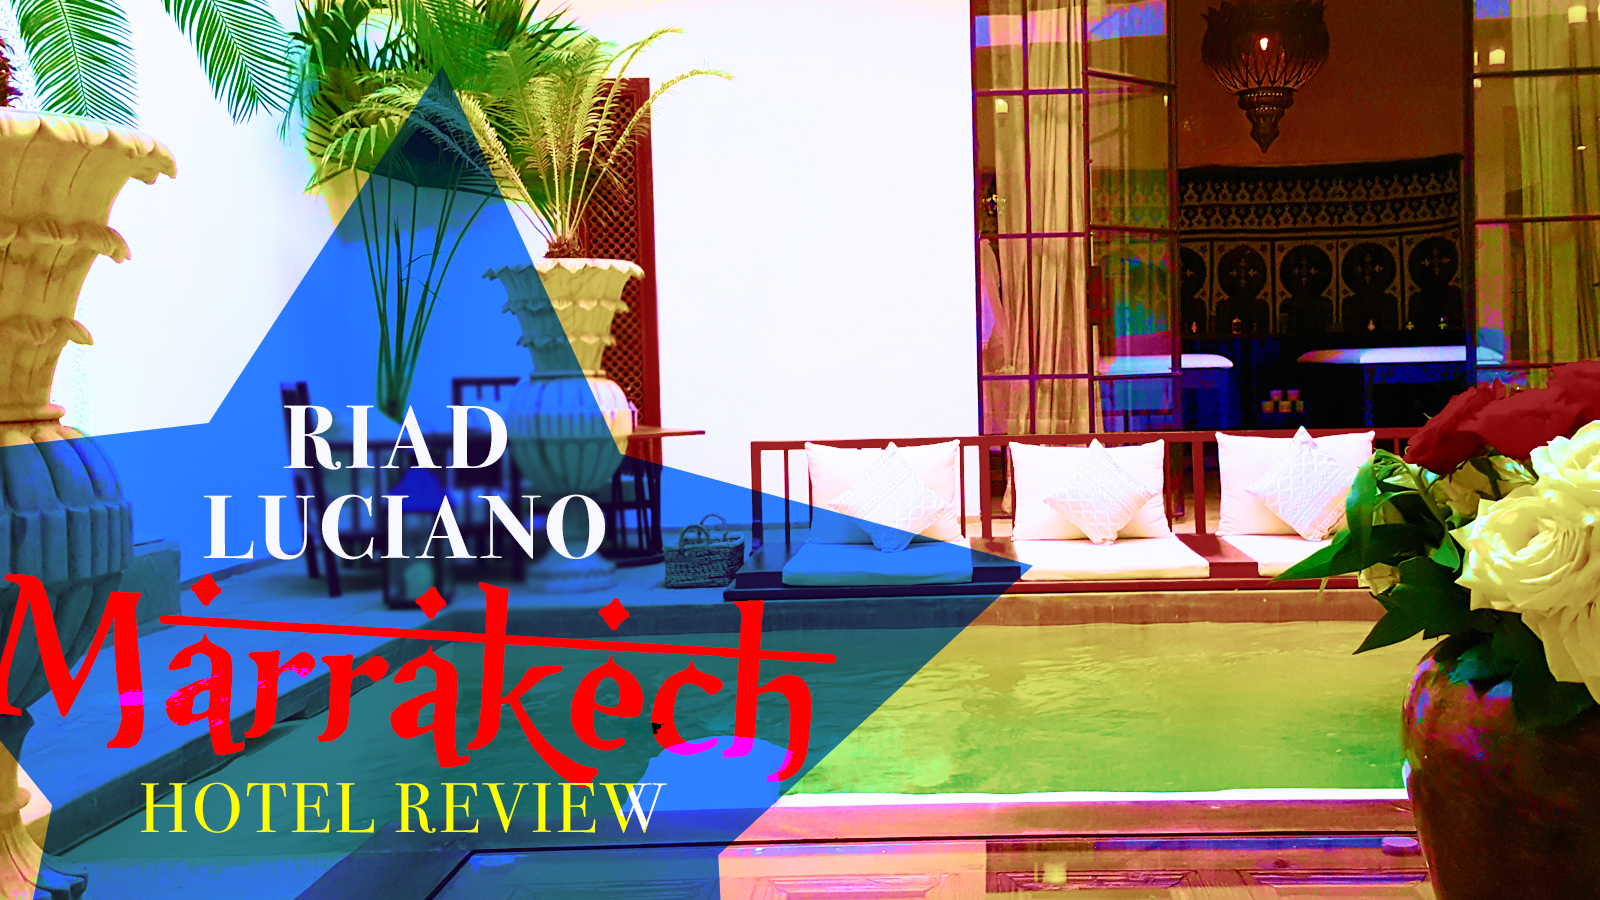 Riad Luciano Marrakech Hotel Review